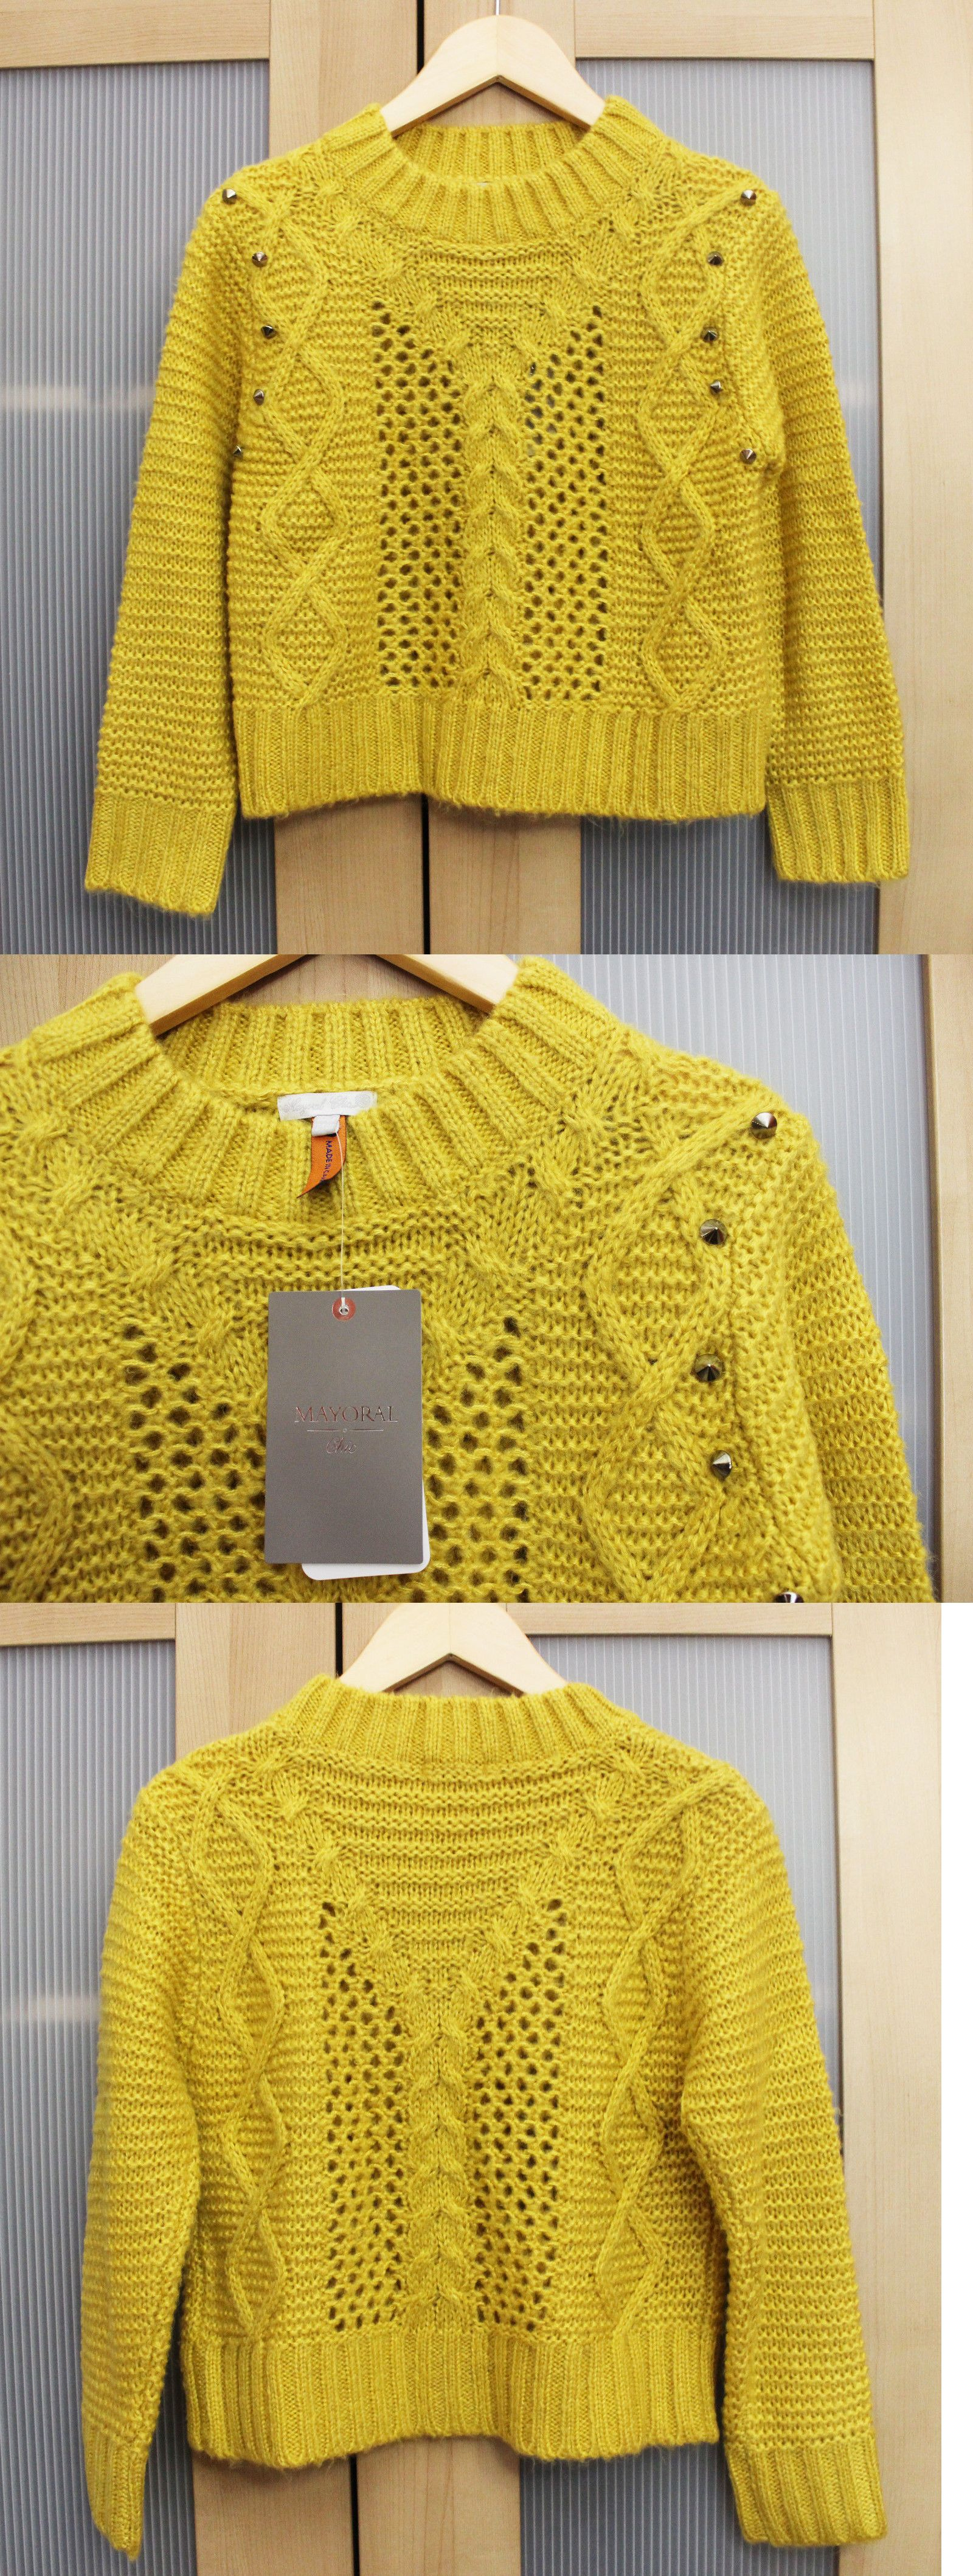 Sweaters 51582: Nwt Mayoral Girls Cable Knit Sweater With Gold ...